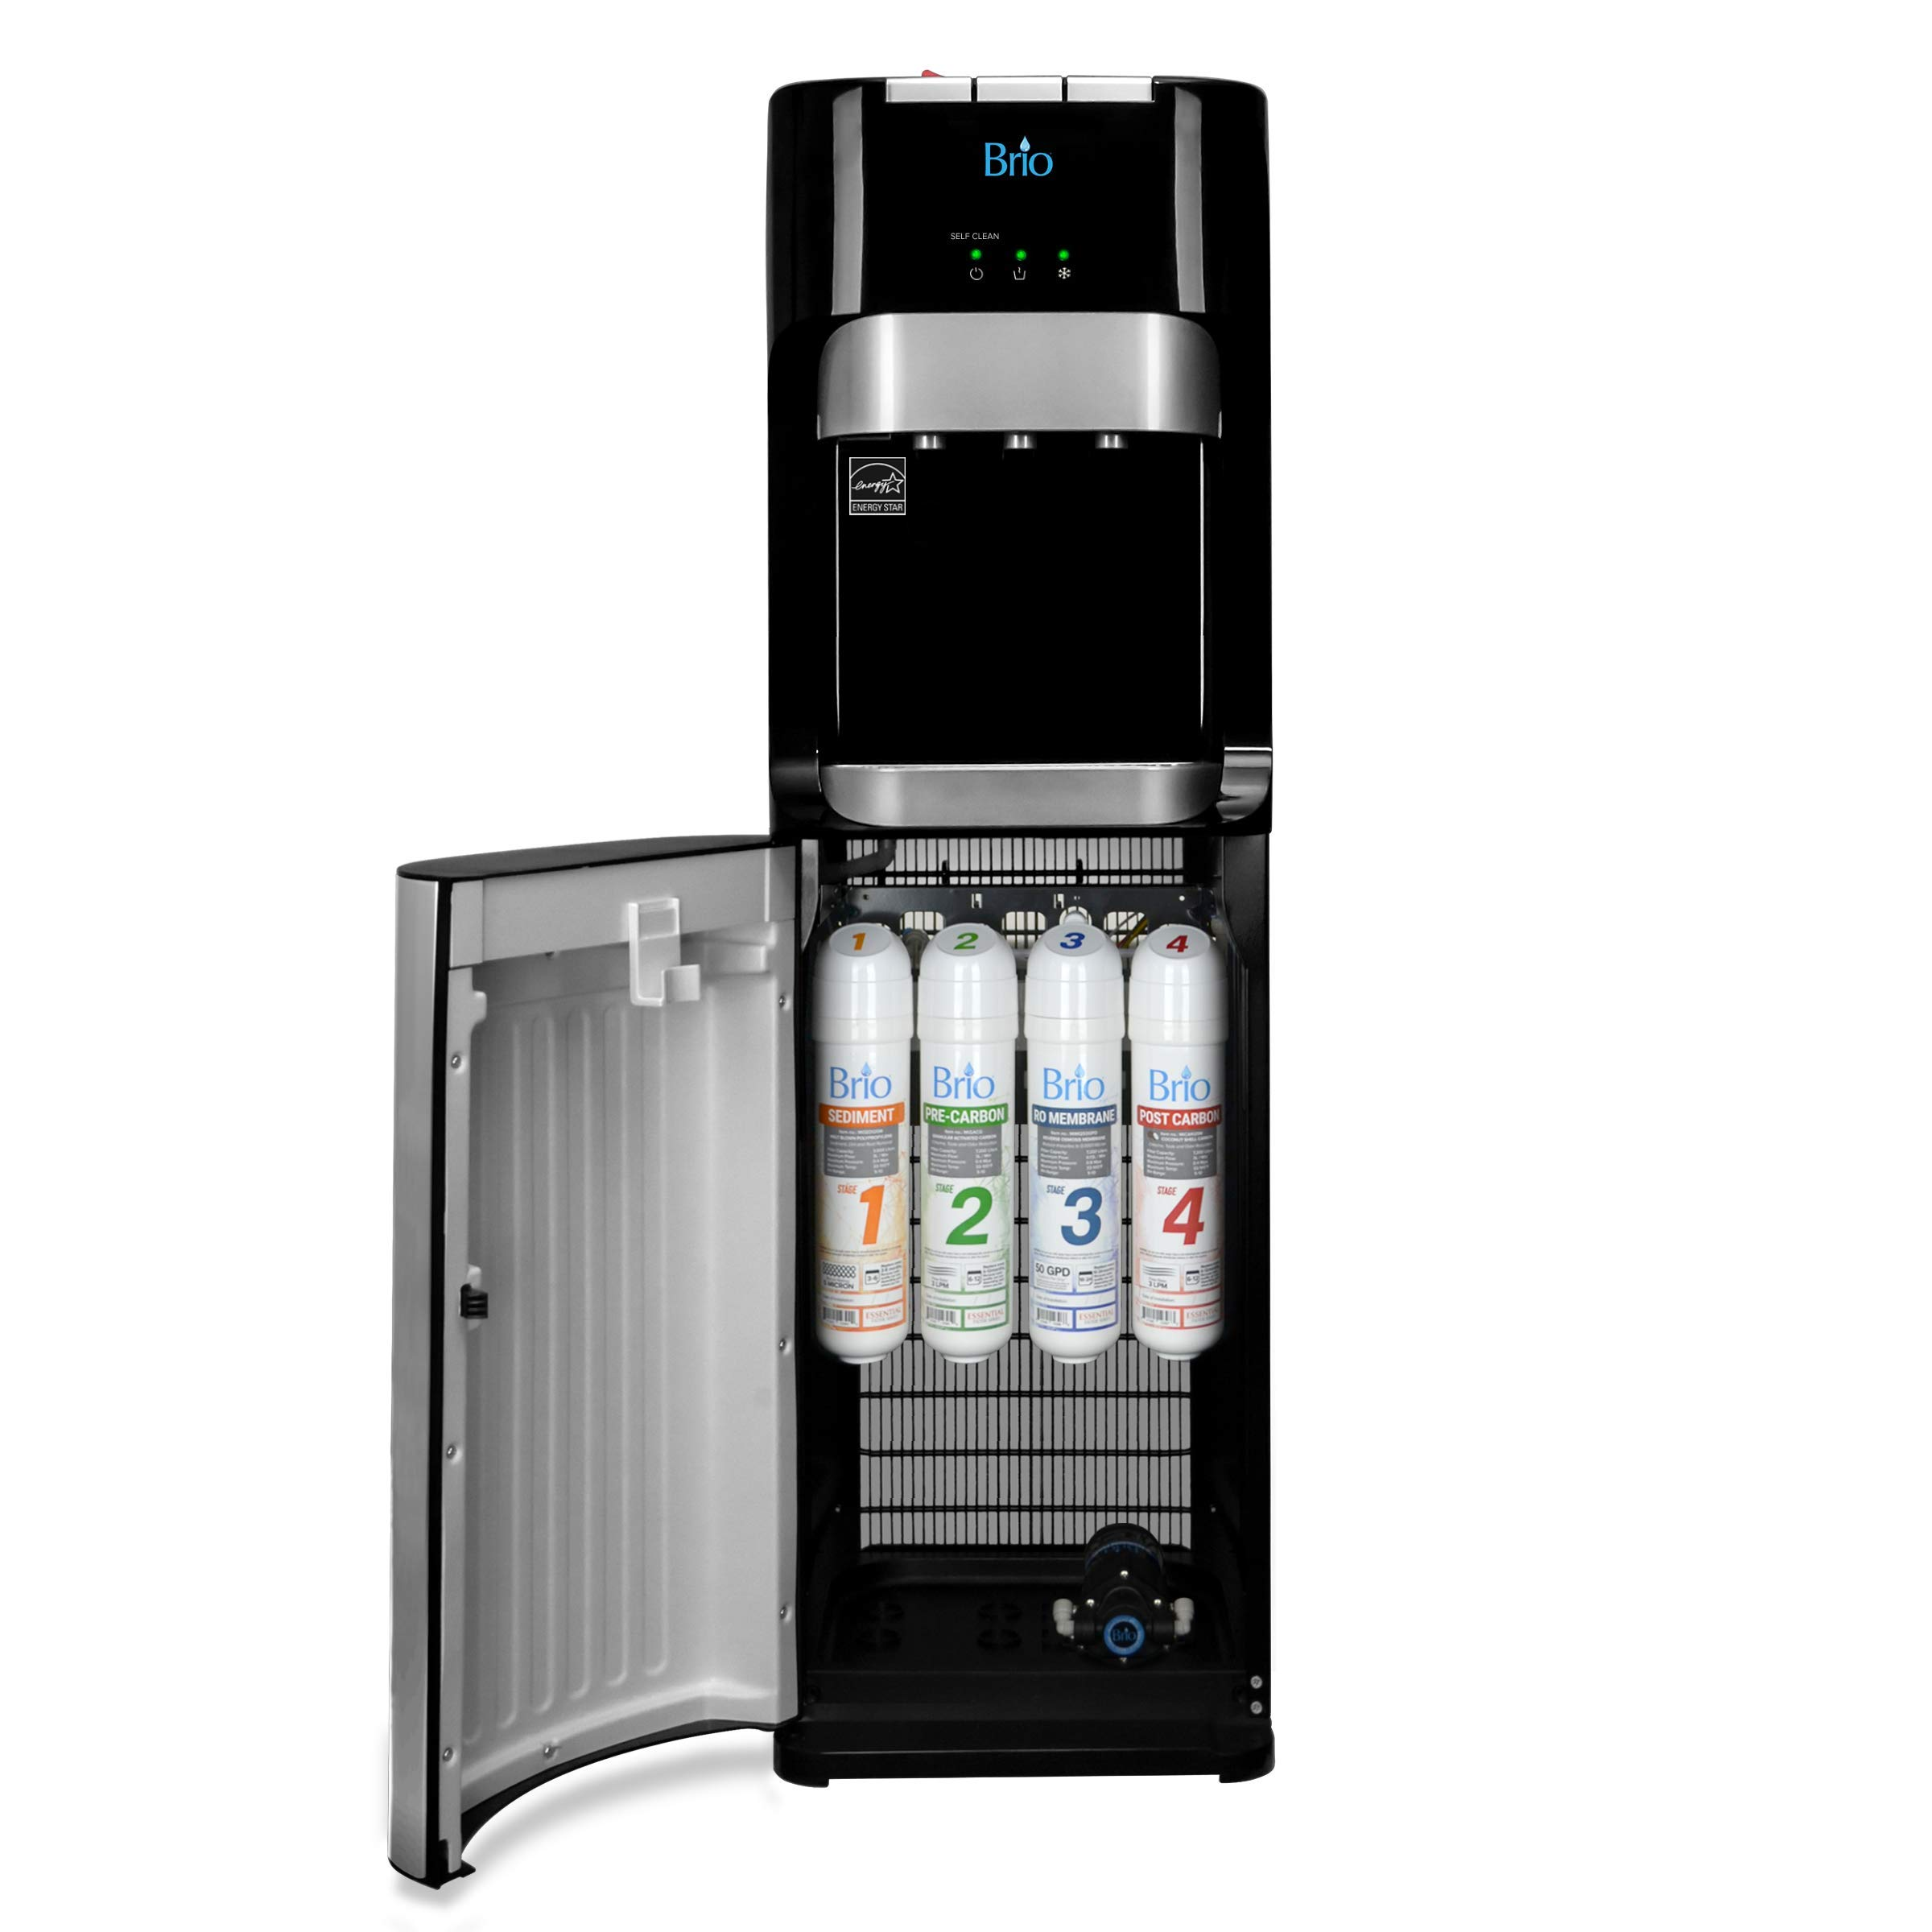 Brio Commercial Grade Bottleless Ultra Safe Reverse Osmosis Drinking Water Filter Water Cooler Dispenser-3 Temperature Settings Hot, Cold & Room Water - UL/Energy Star Approved - Point of Use - Version 2